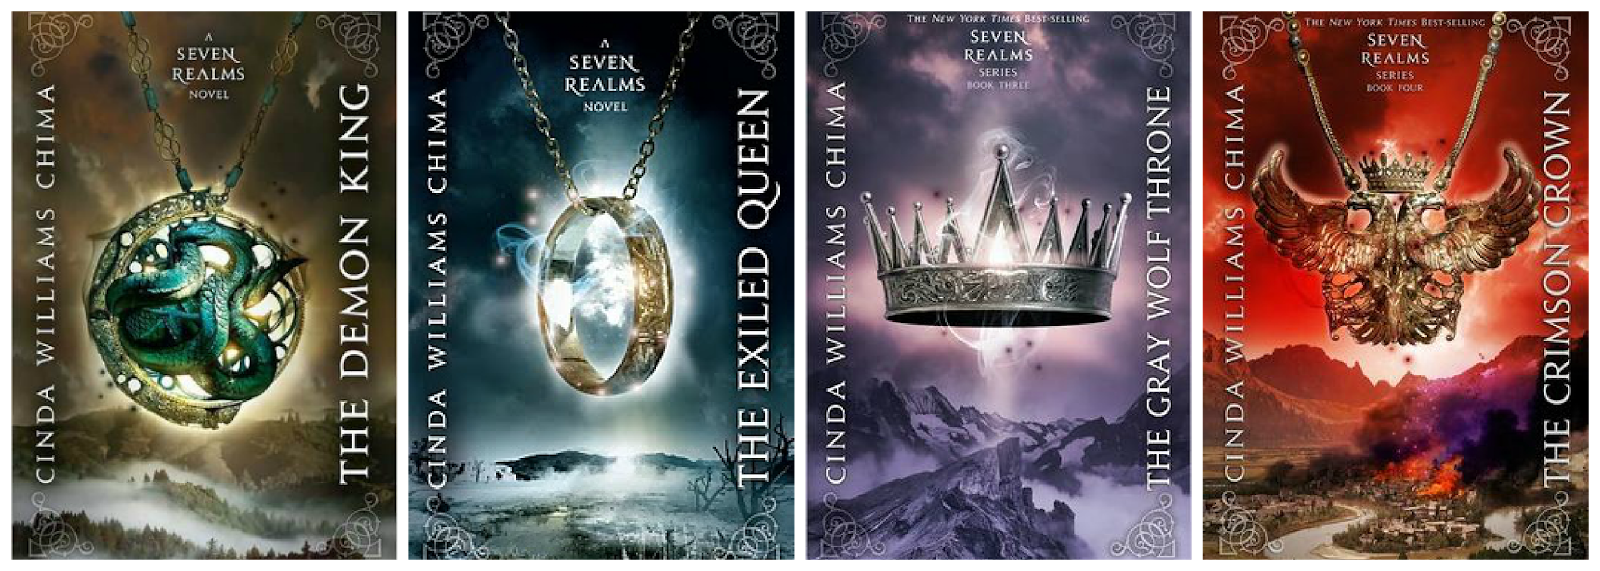 Popular Young Adult Fantasy Books - Goodreads